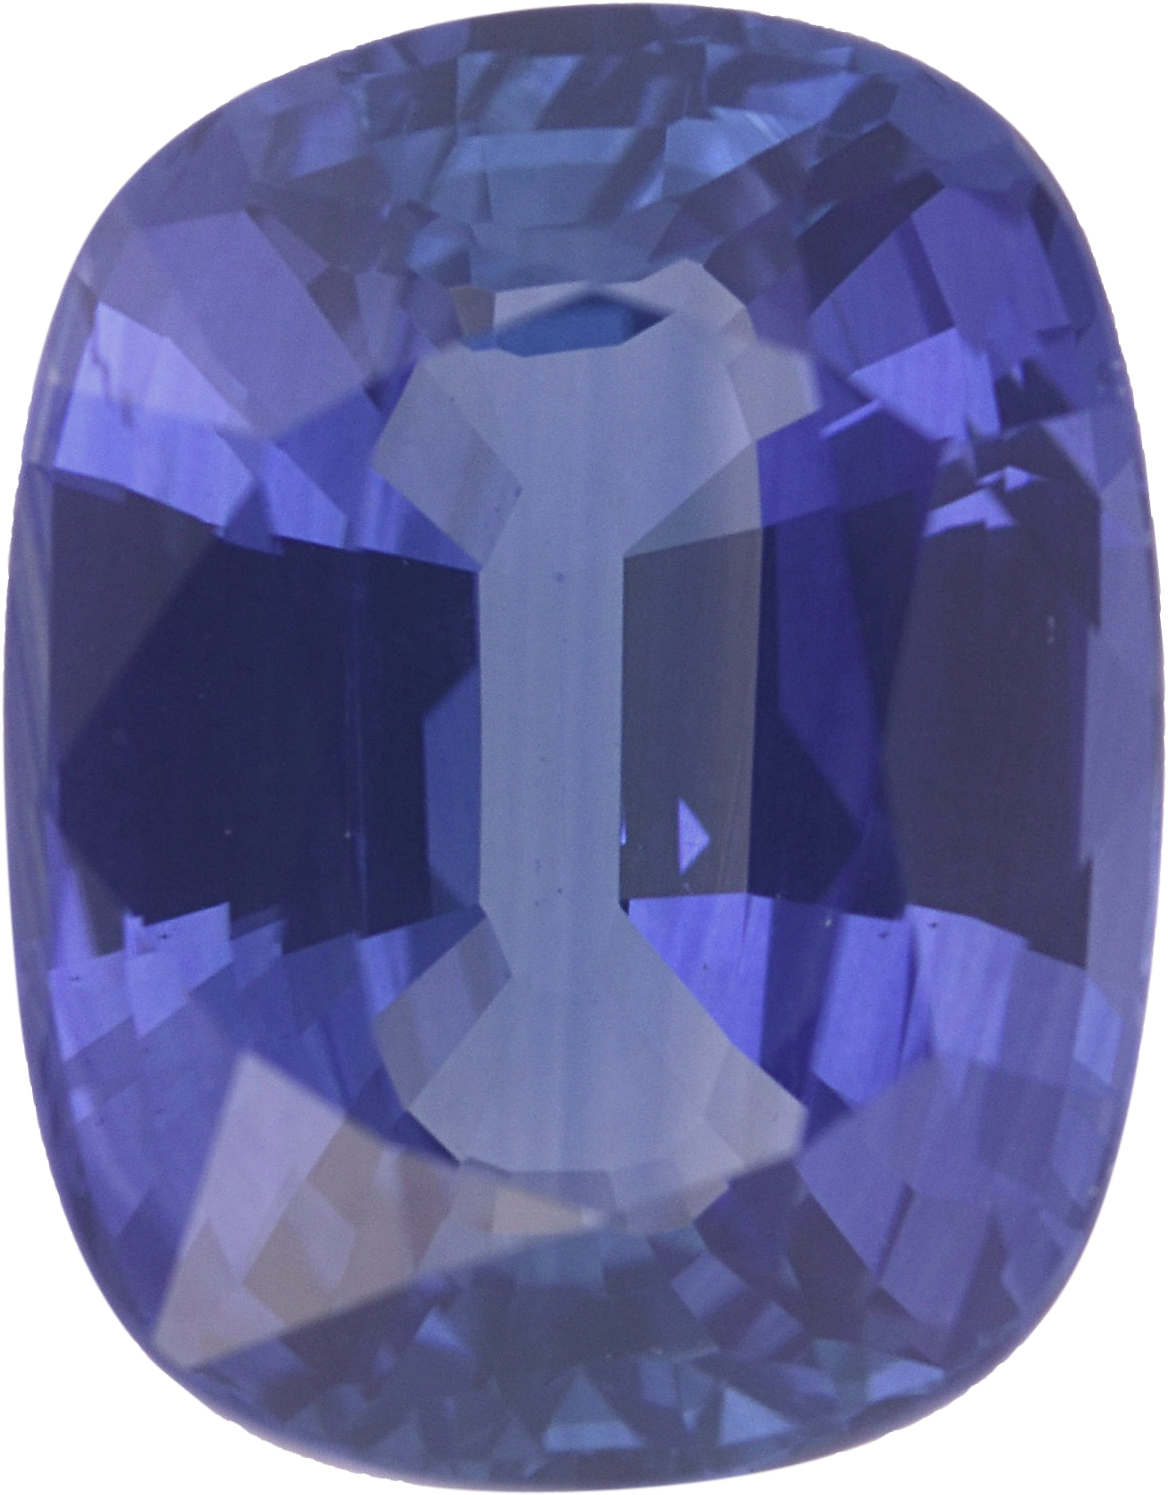 8.94 x 6.97 mm, Blue Loose Sapphire Gemstone in Antique Cushion Cut, Violetish Blue, 2.64 carats